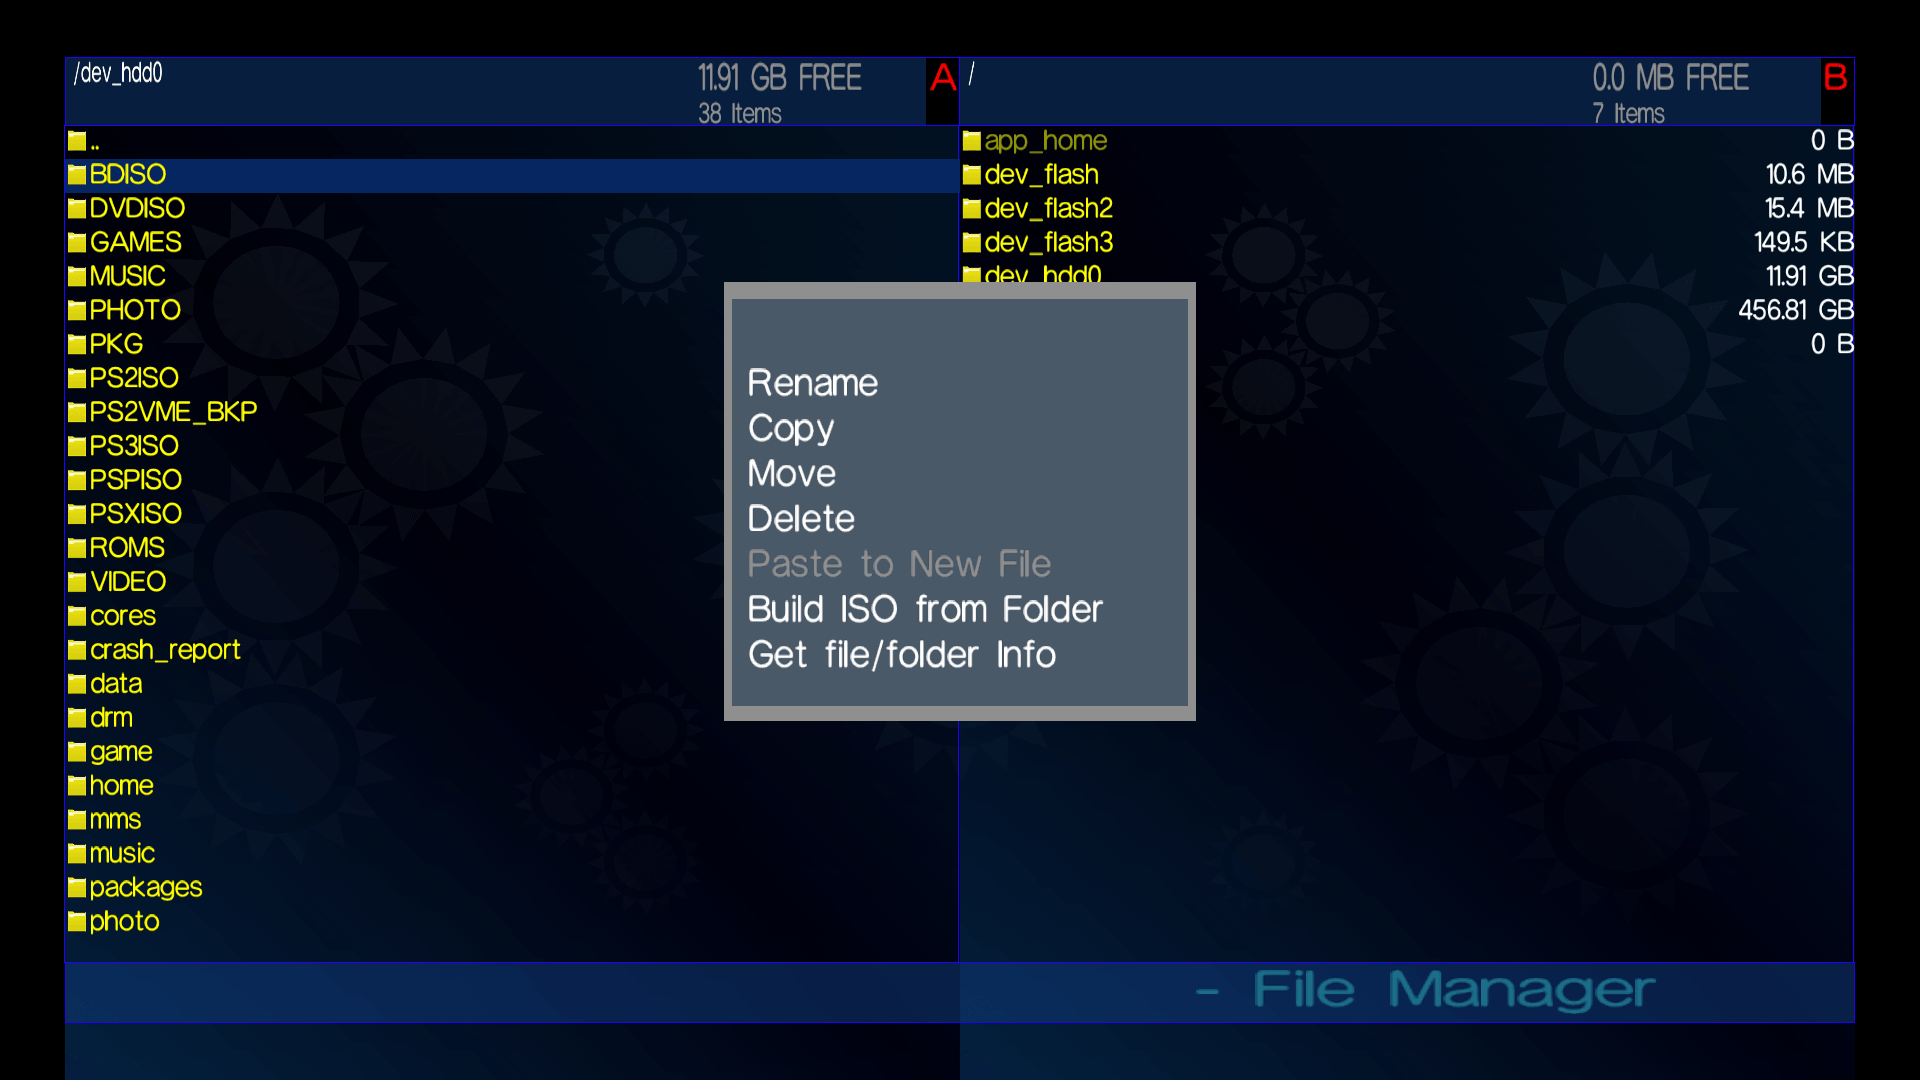 PS3 - IRISMAN v4 82: Support for 4 82 - CFW (CEX) (Update by